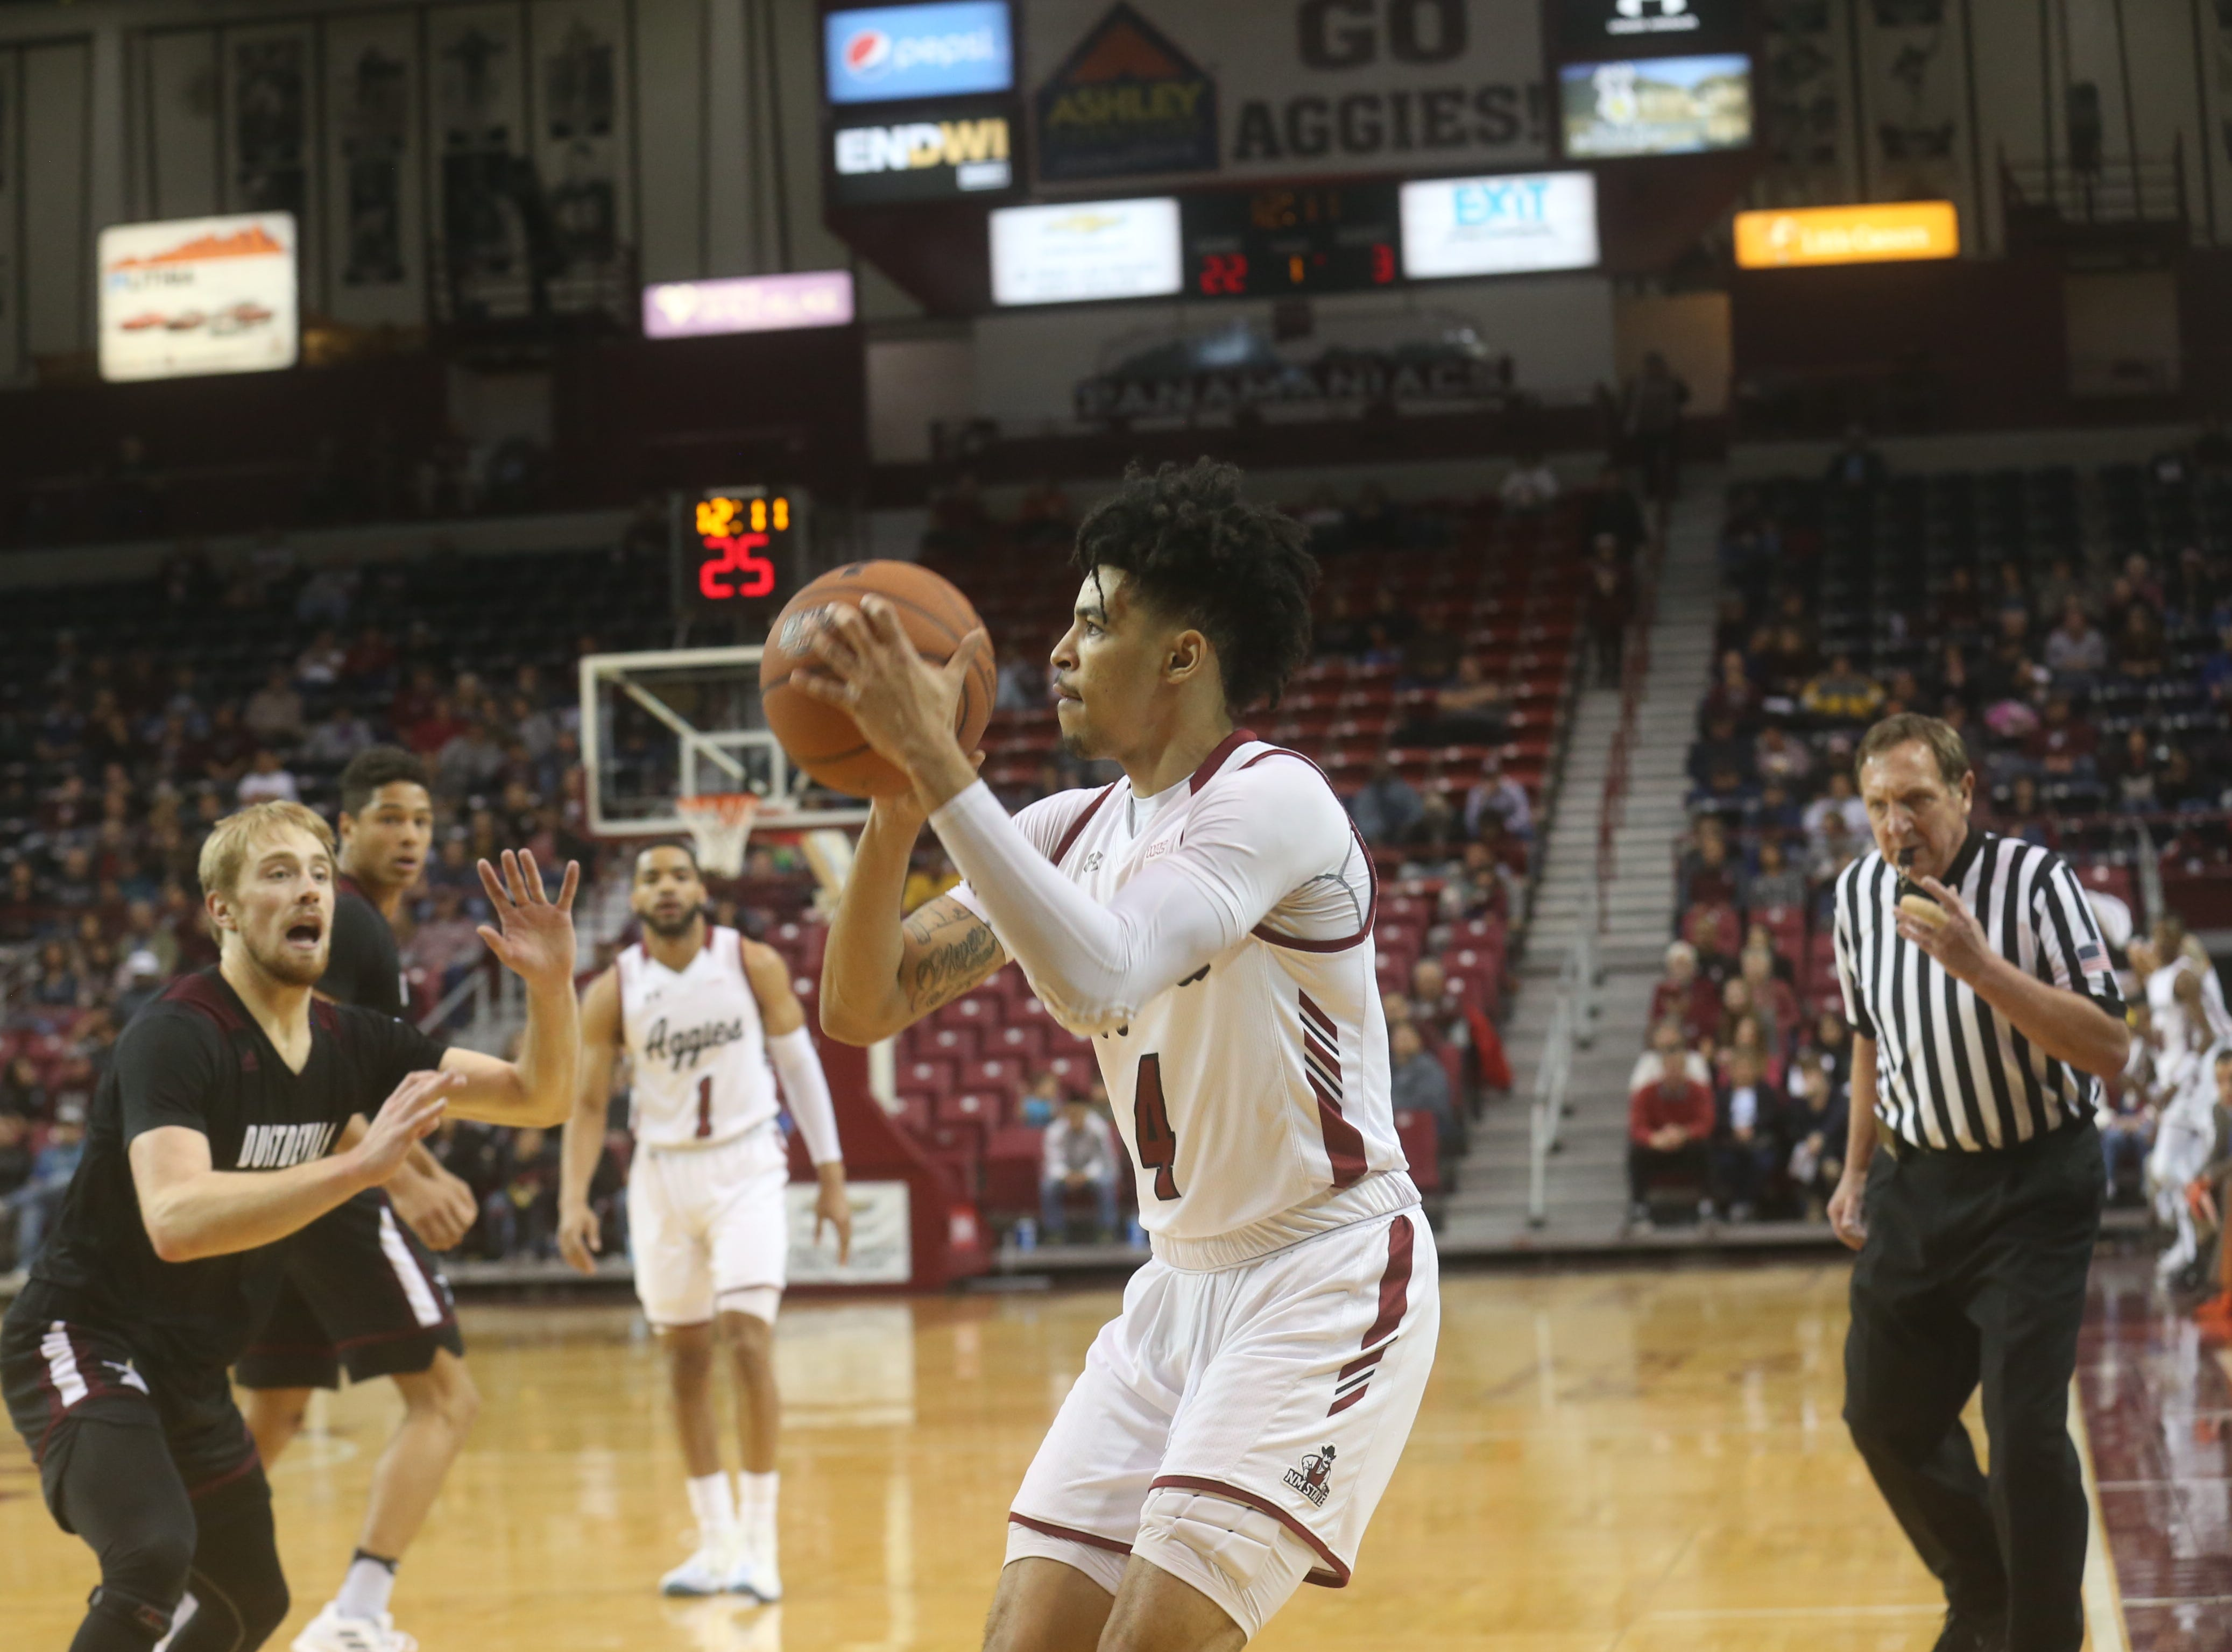 Aggies' JoJo Zamora finds an open shot in the second half against Texas A&M International.